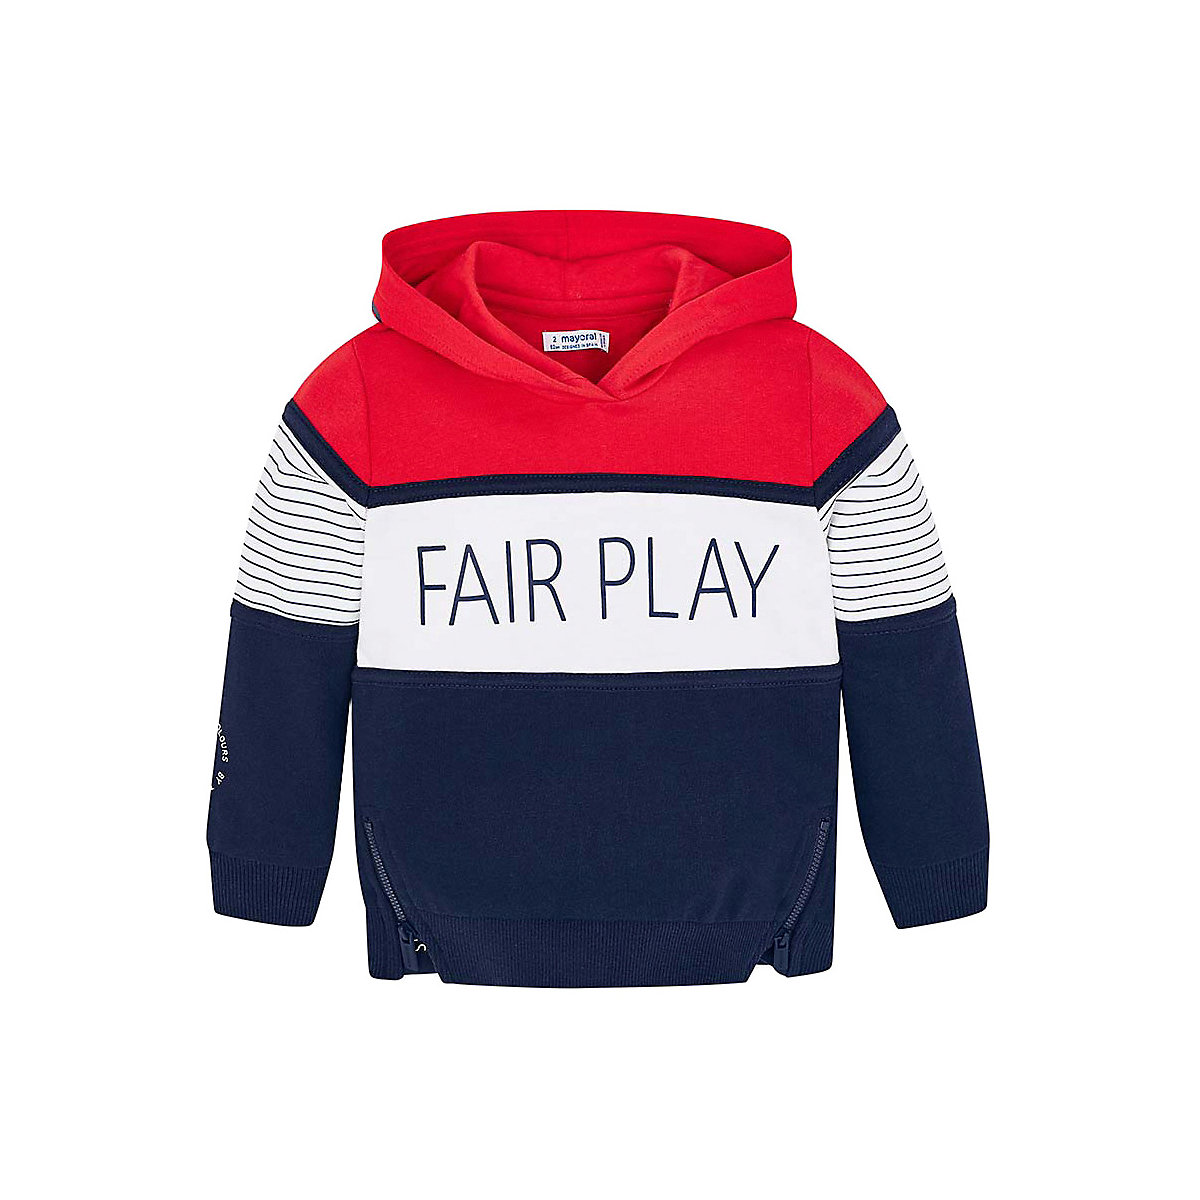 Sweaters MAYORAL 10685340 sweatshirt hoodies for kids cardigan clothes for girls and boys zip up jaquard sweater cardigan